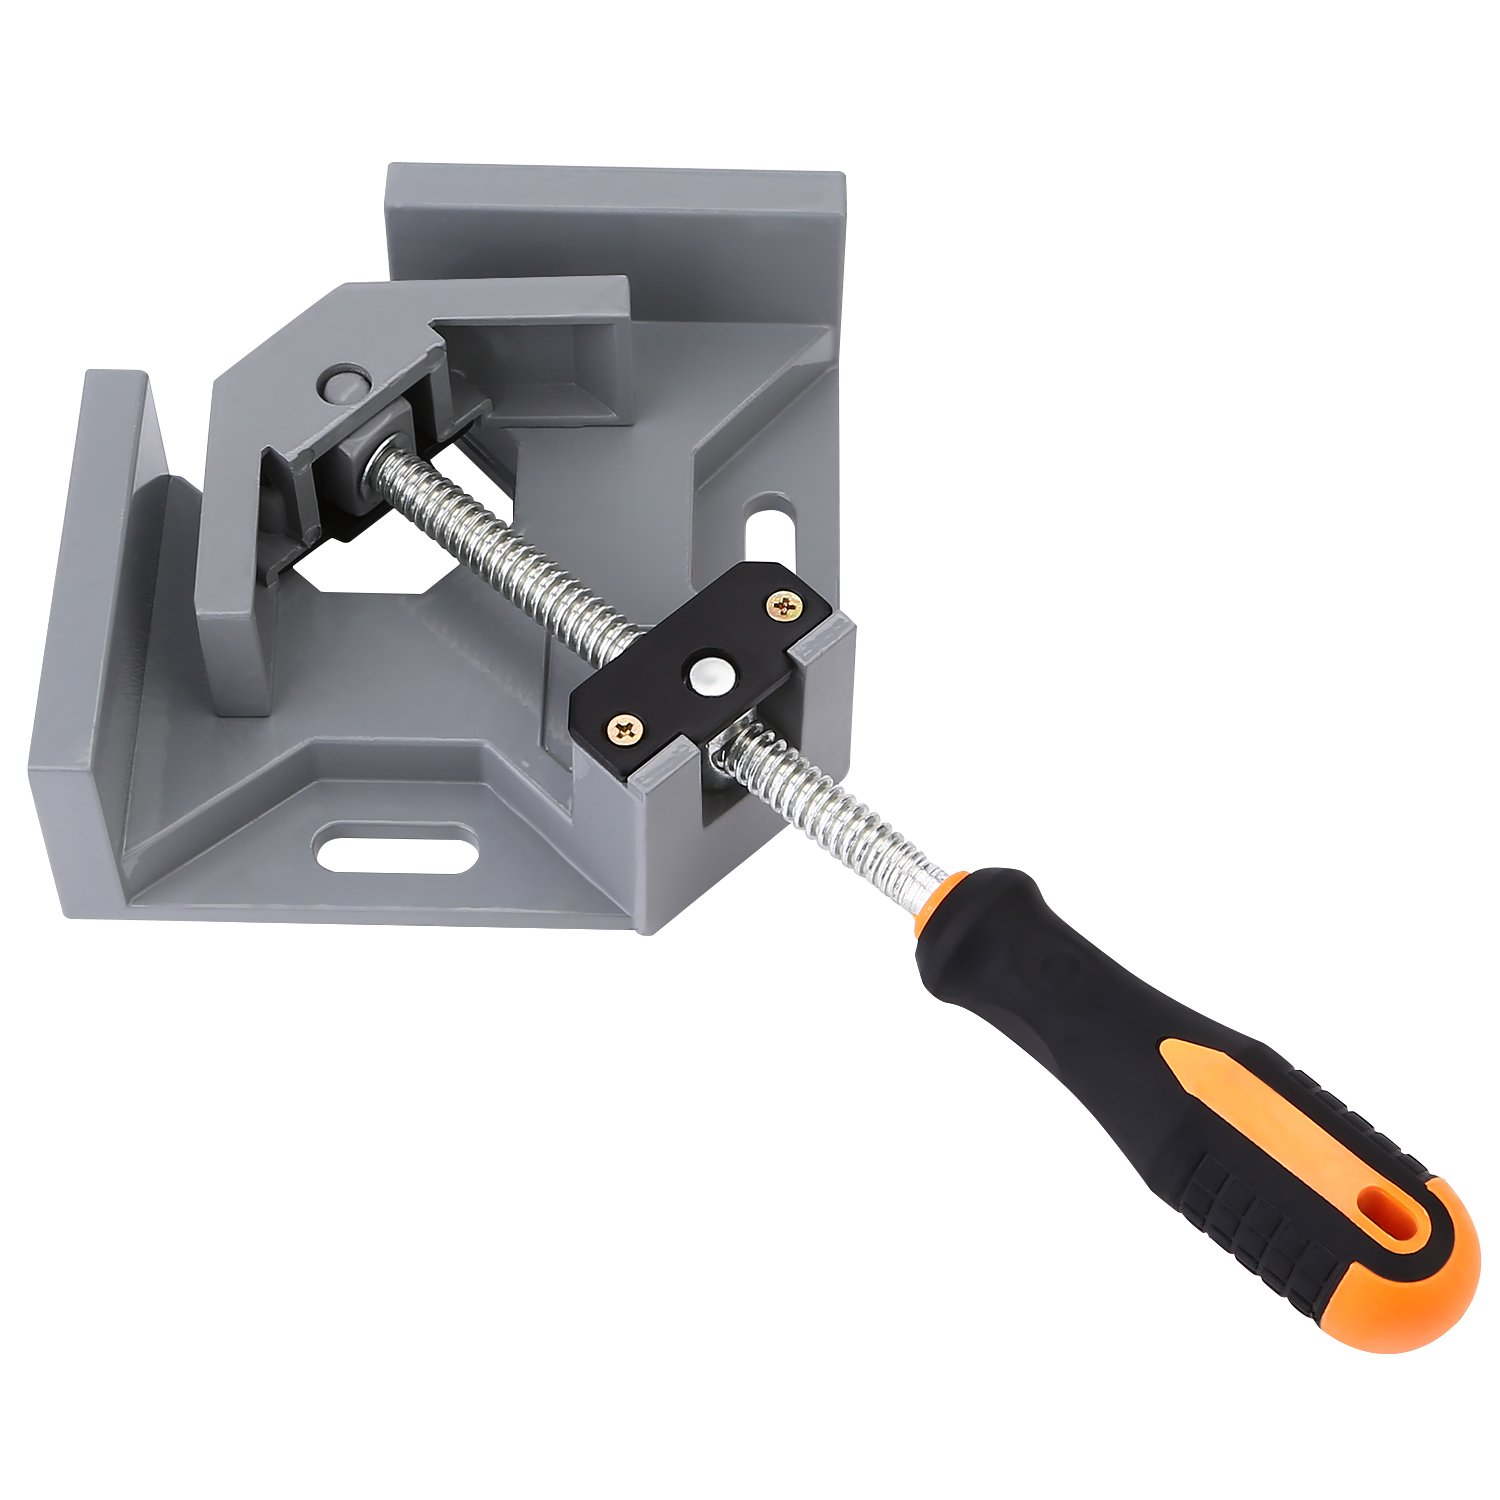 OCGIG 90 Degree Single Handle Right Angle Clamps Adjustable Swing Jaw Corner Clamp Vise Tool Jig